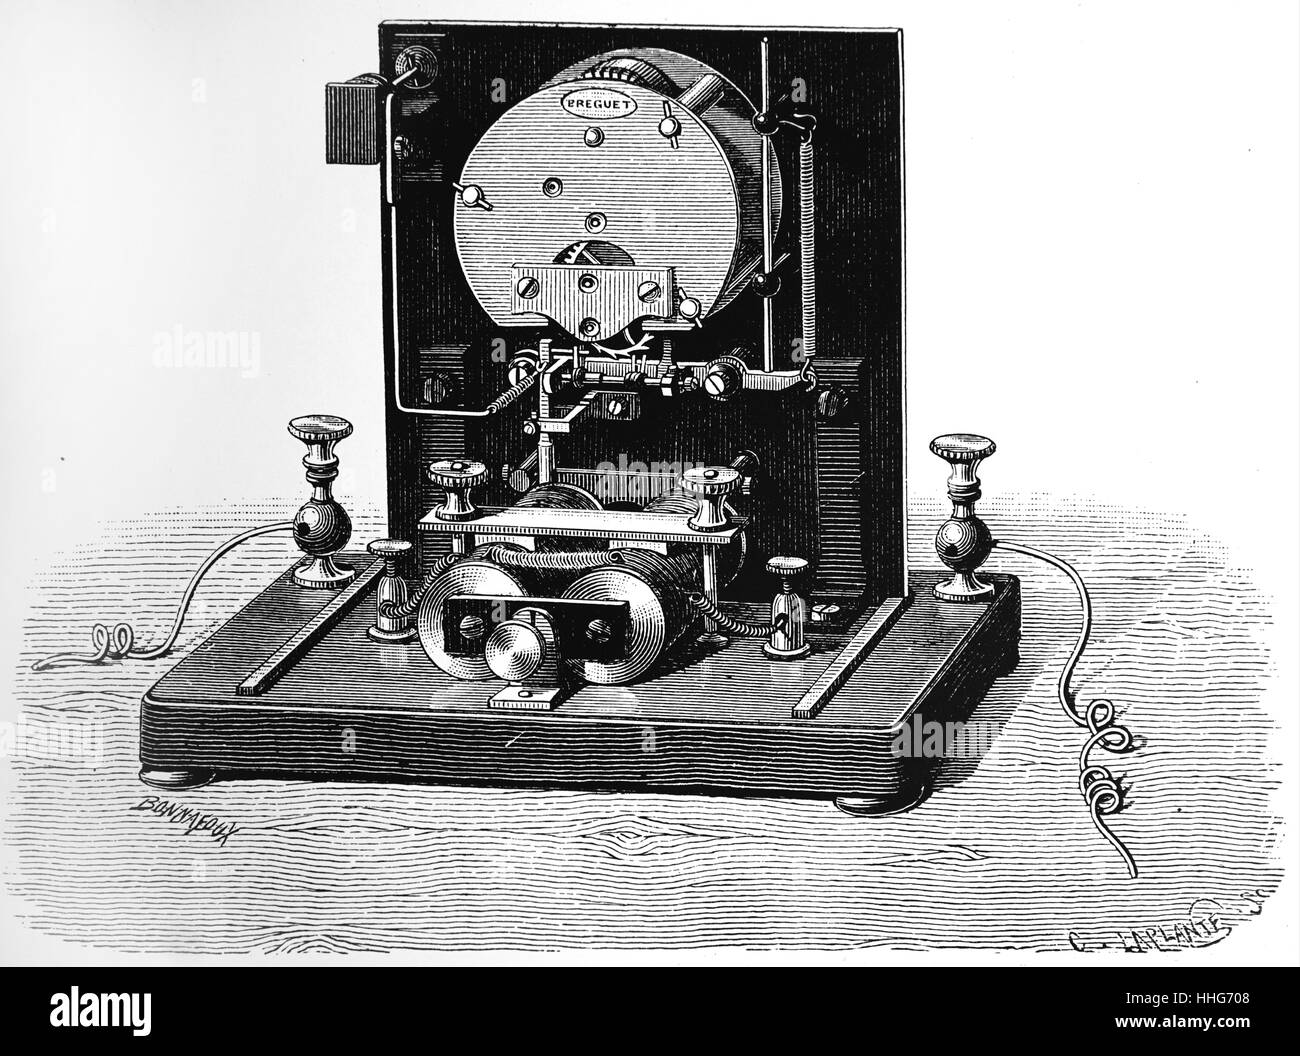 Mechanism of indicator (receiver) of Breguet's dial telegraph. 1891. - Stock Image